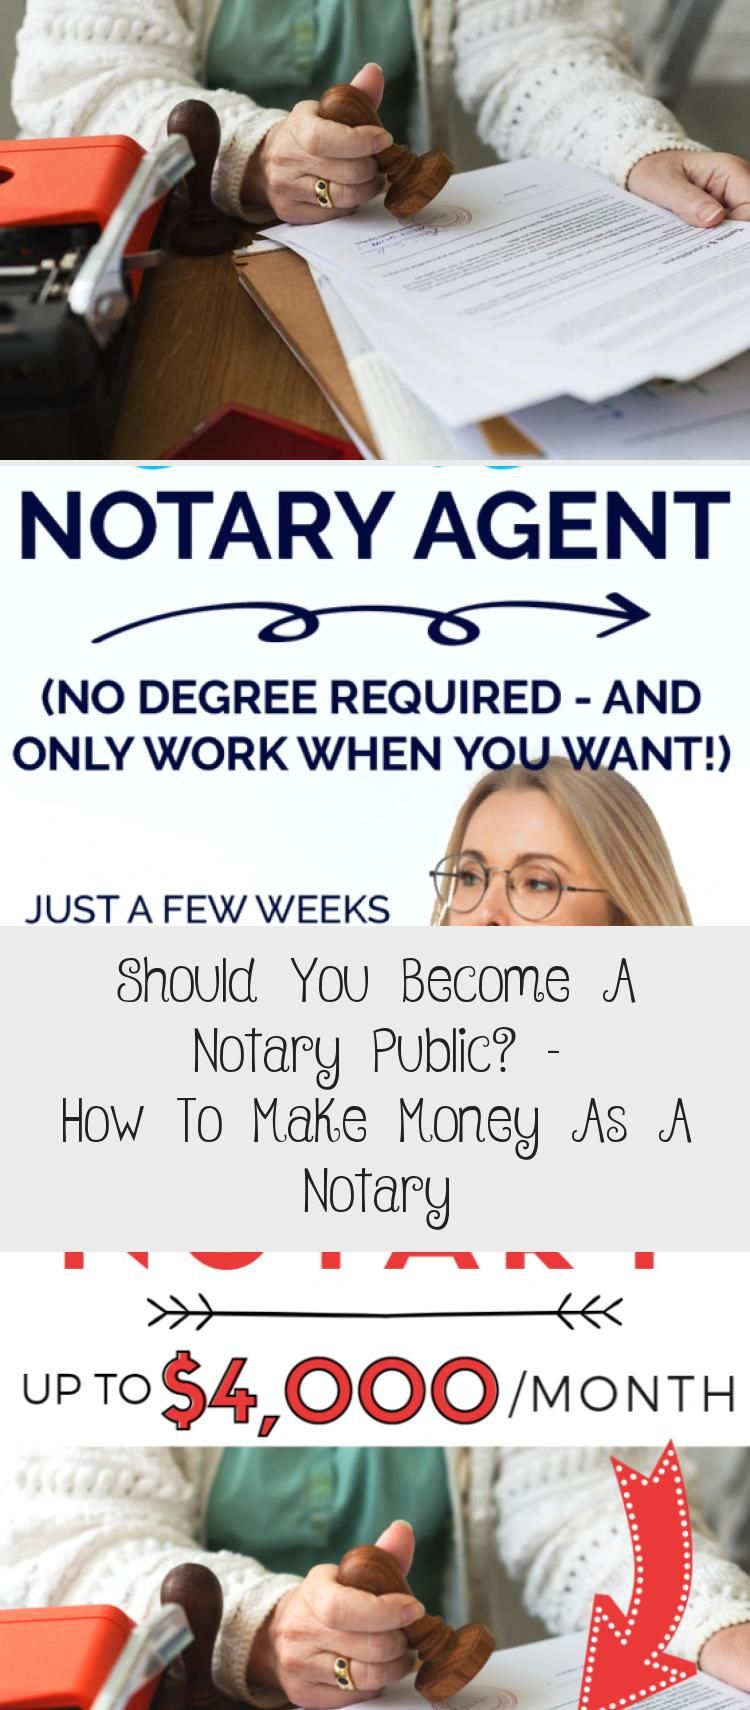 All that you need to know about a notary public